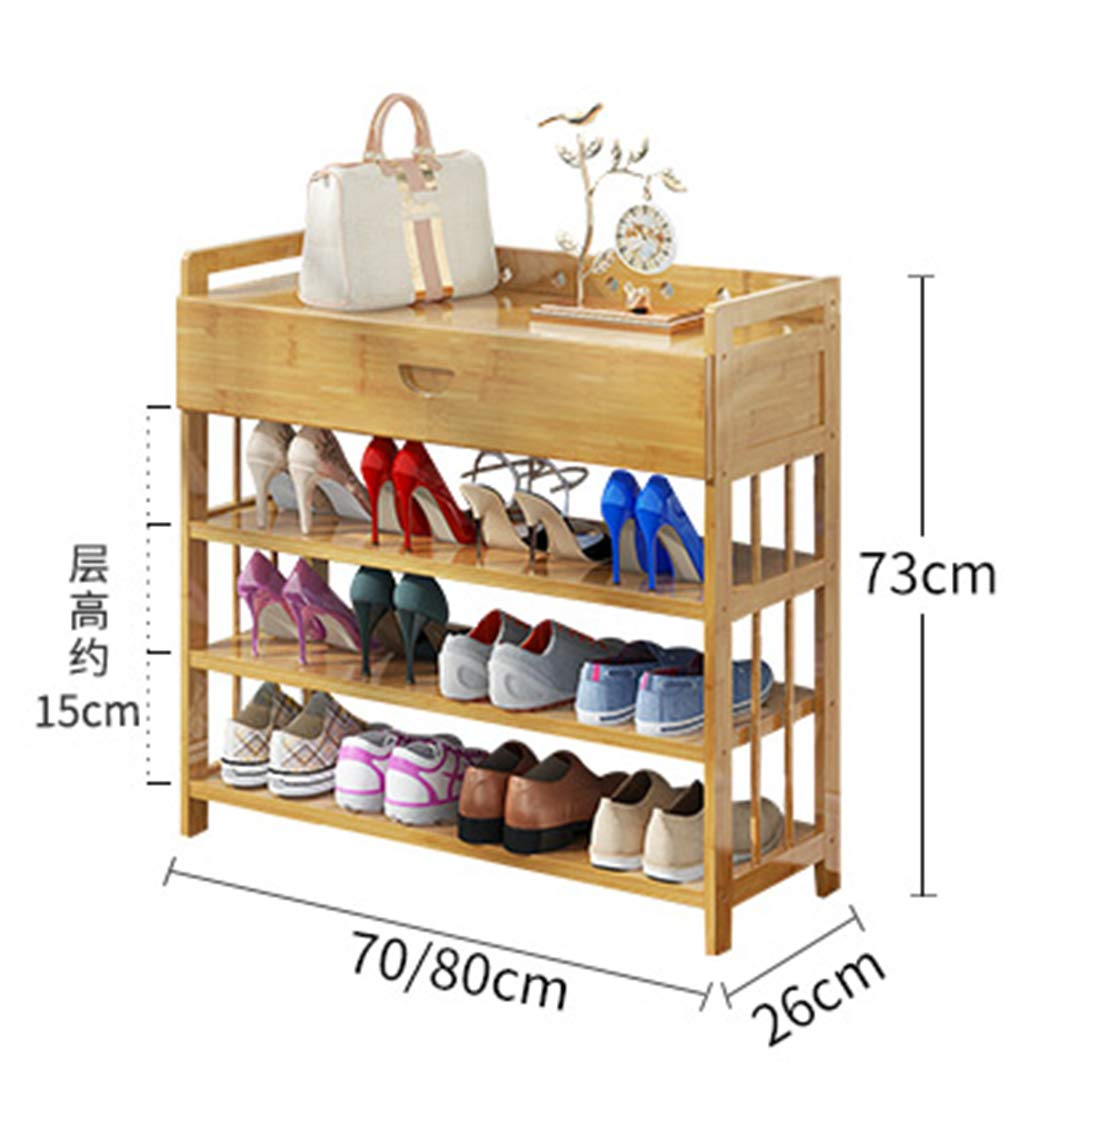 Enolla Multi-Layer Storage Rack with Drawers Simple Personality Bamboo Plant Frame Living Room Bedroom Environmental Health,802673cm